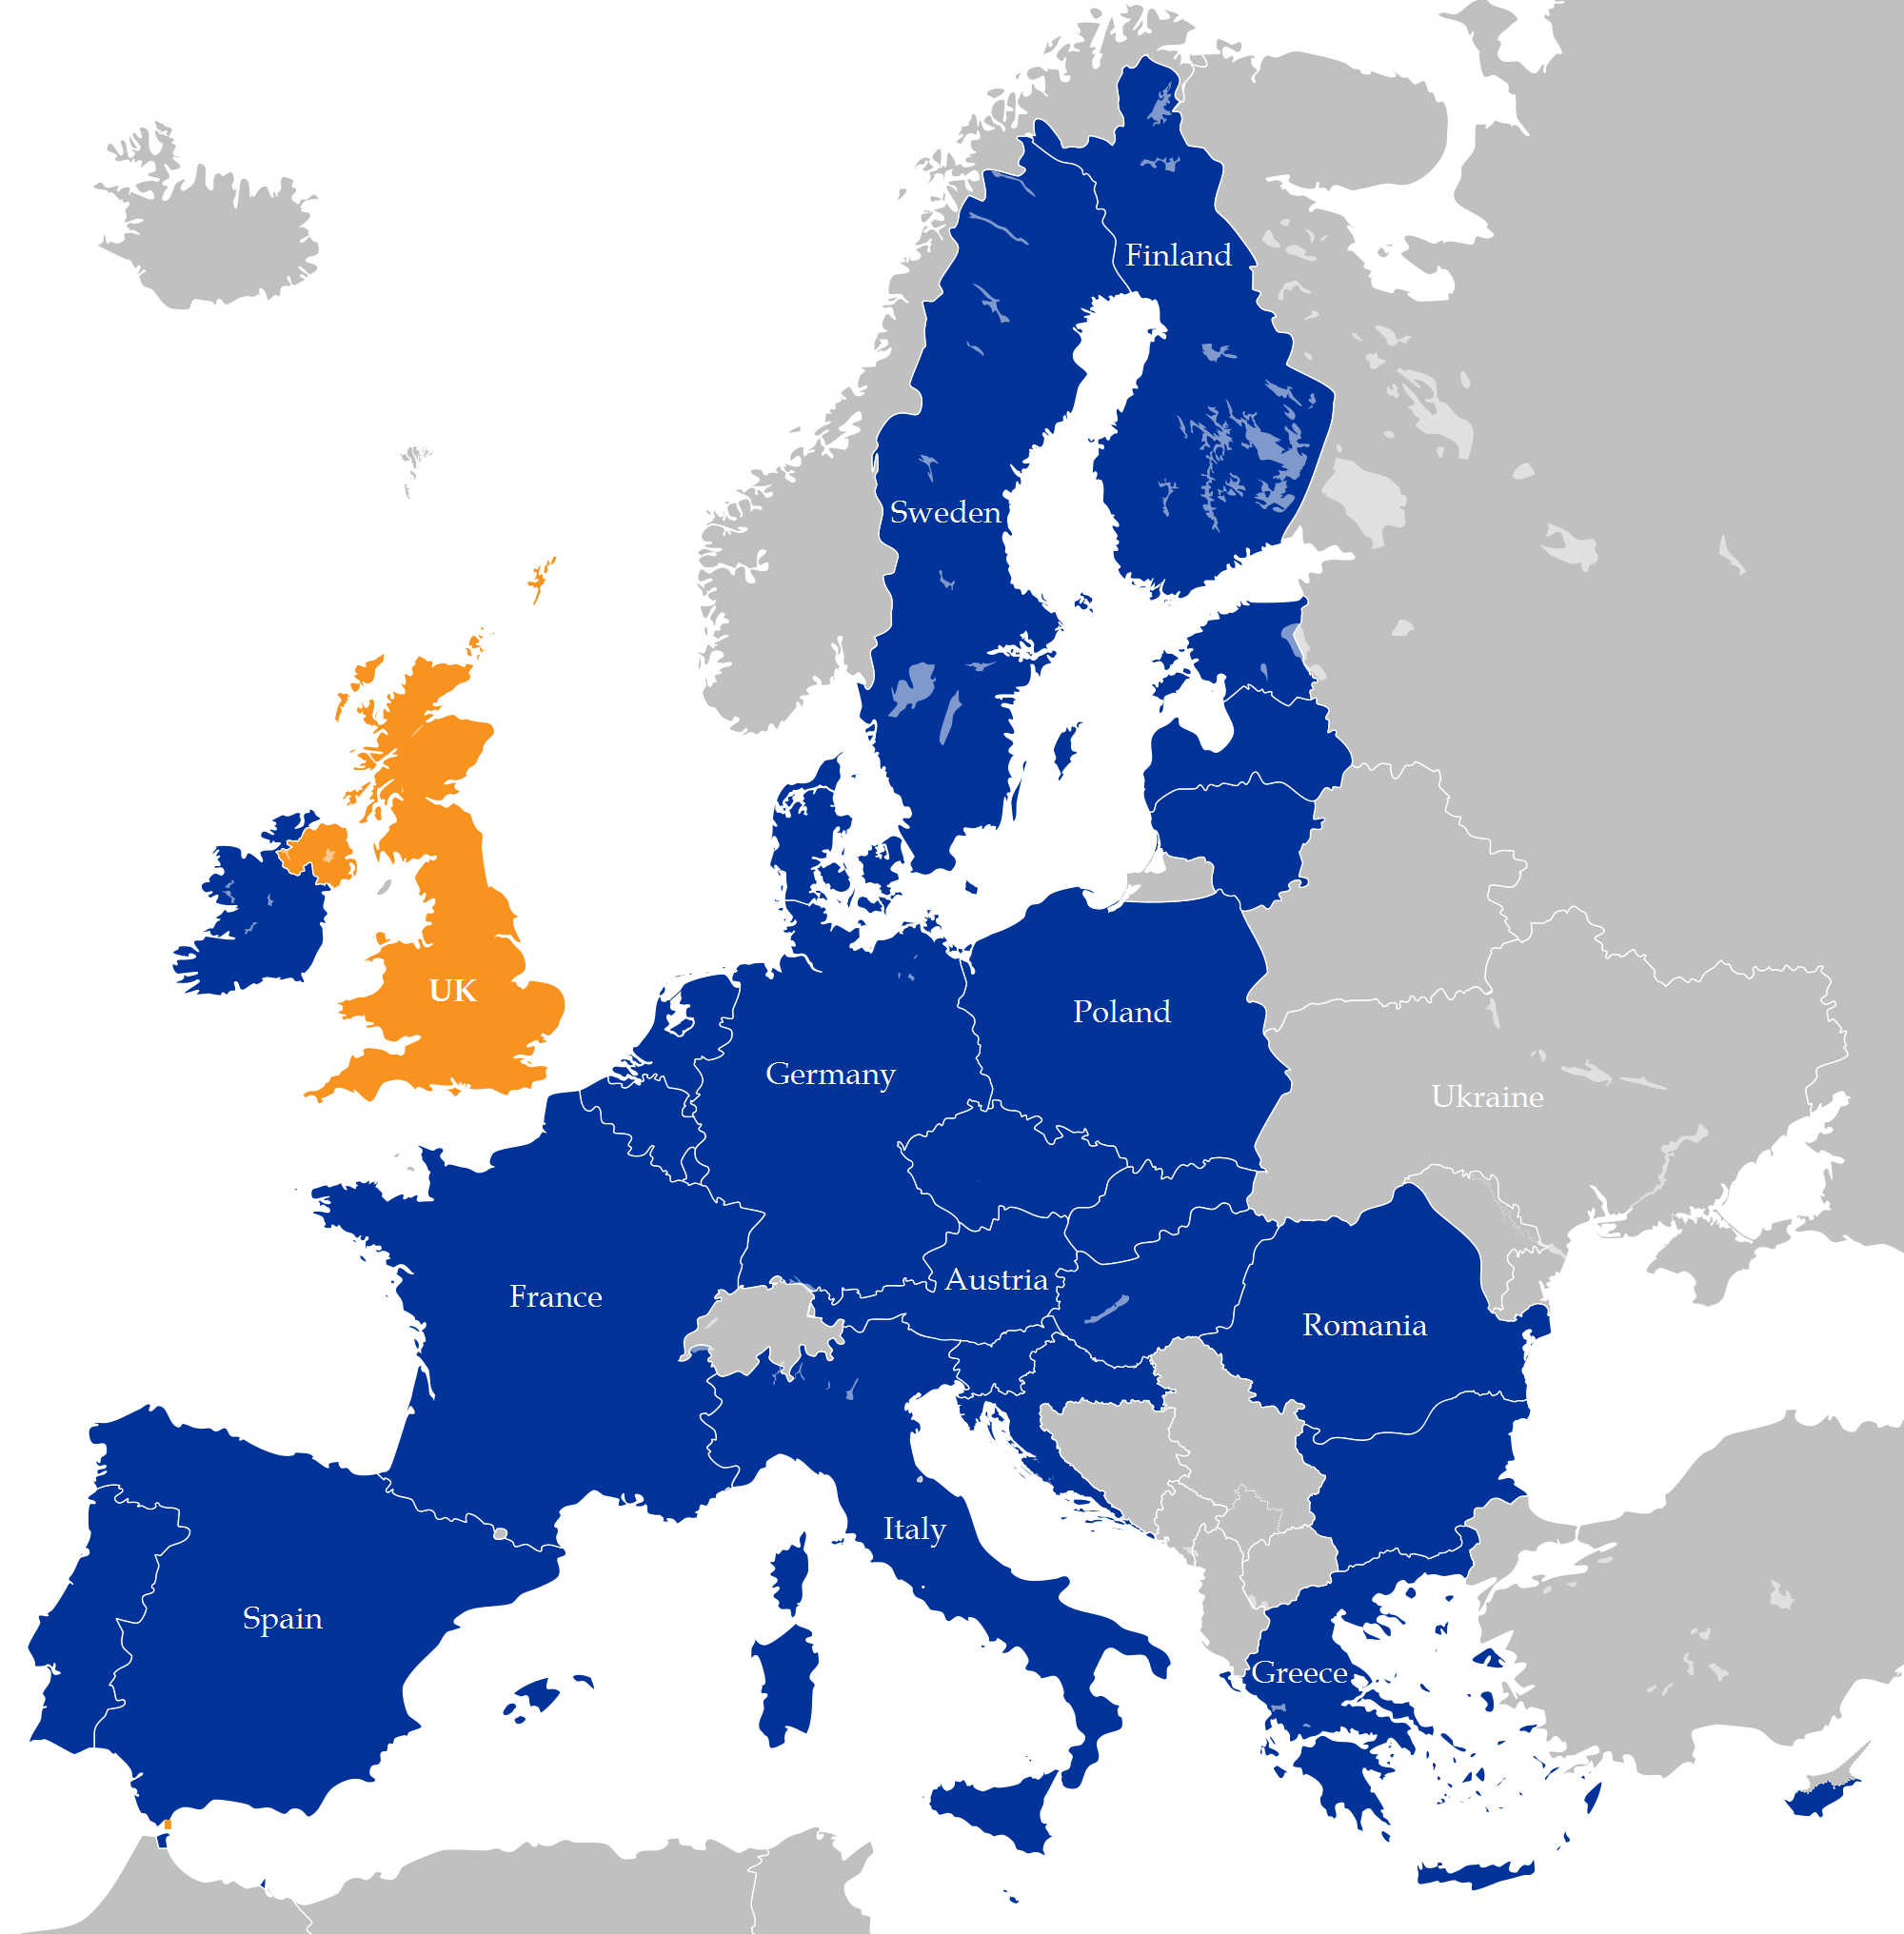 Map of Europe showing the EU in blue and the U.K. in yellow.Credit:  Wikimedia